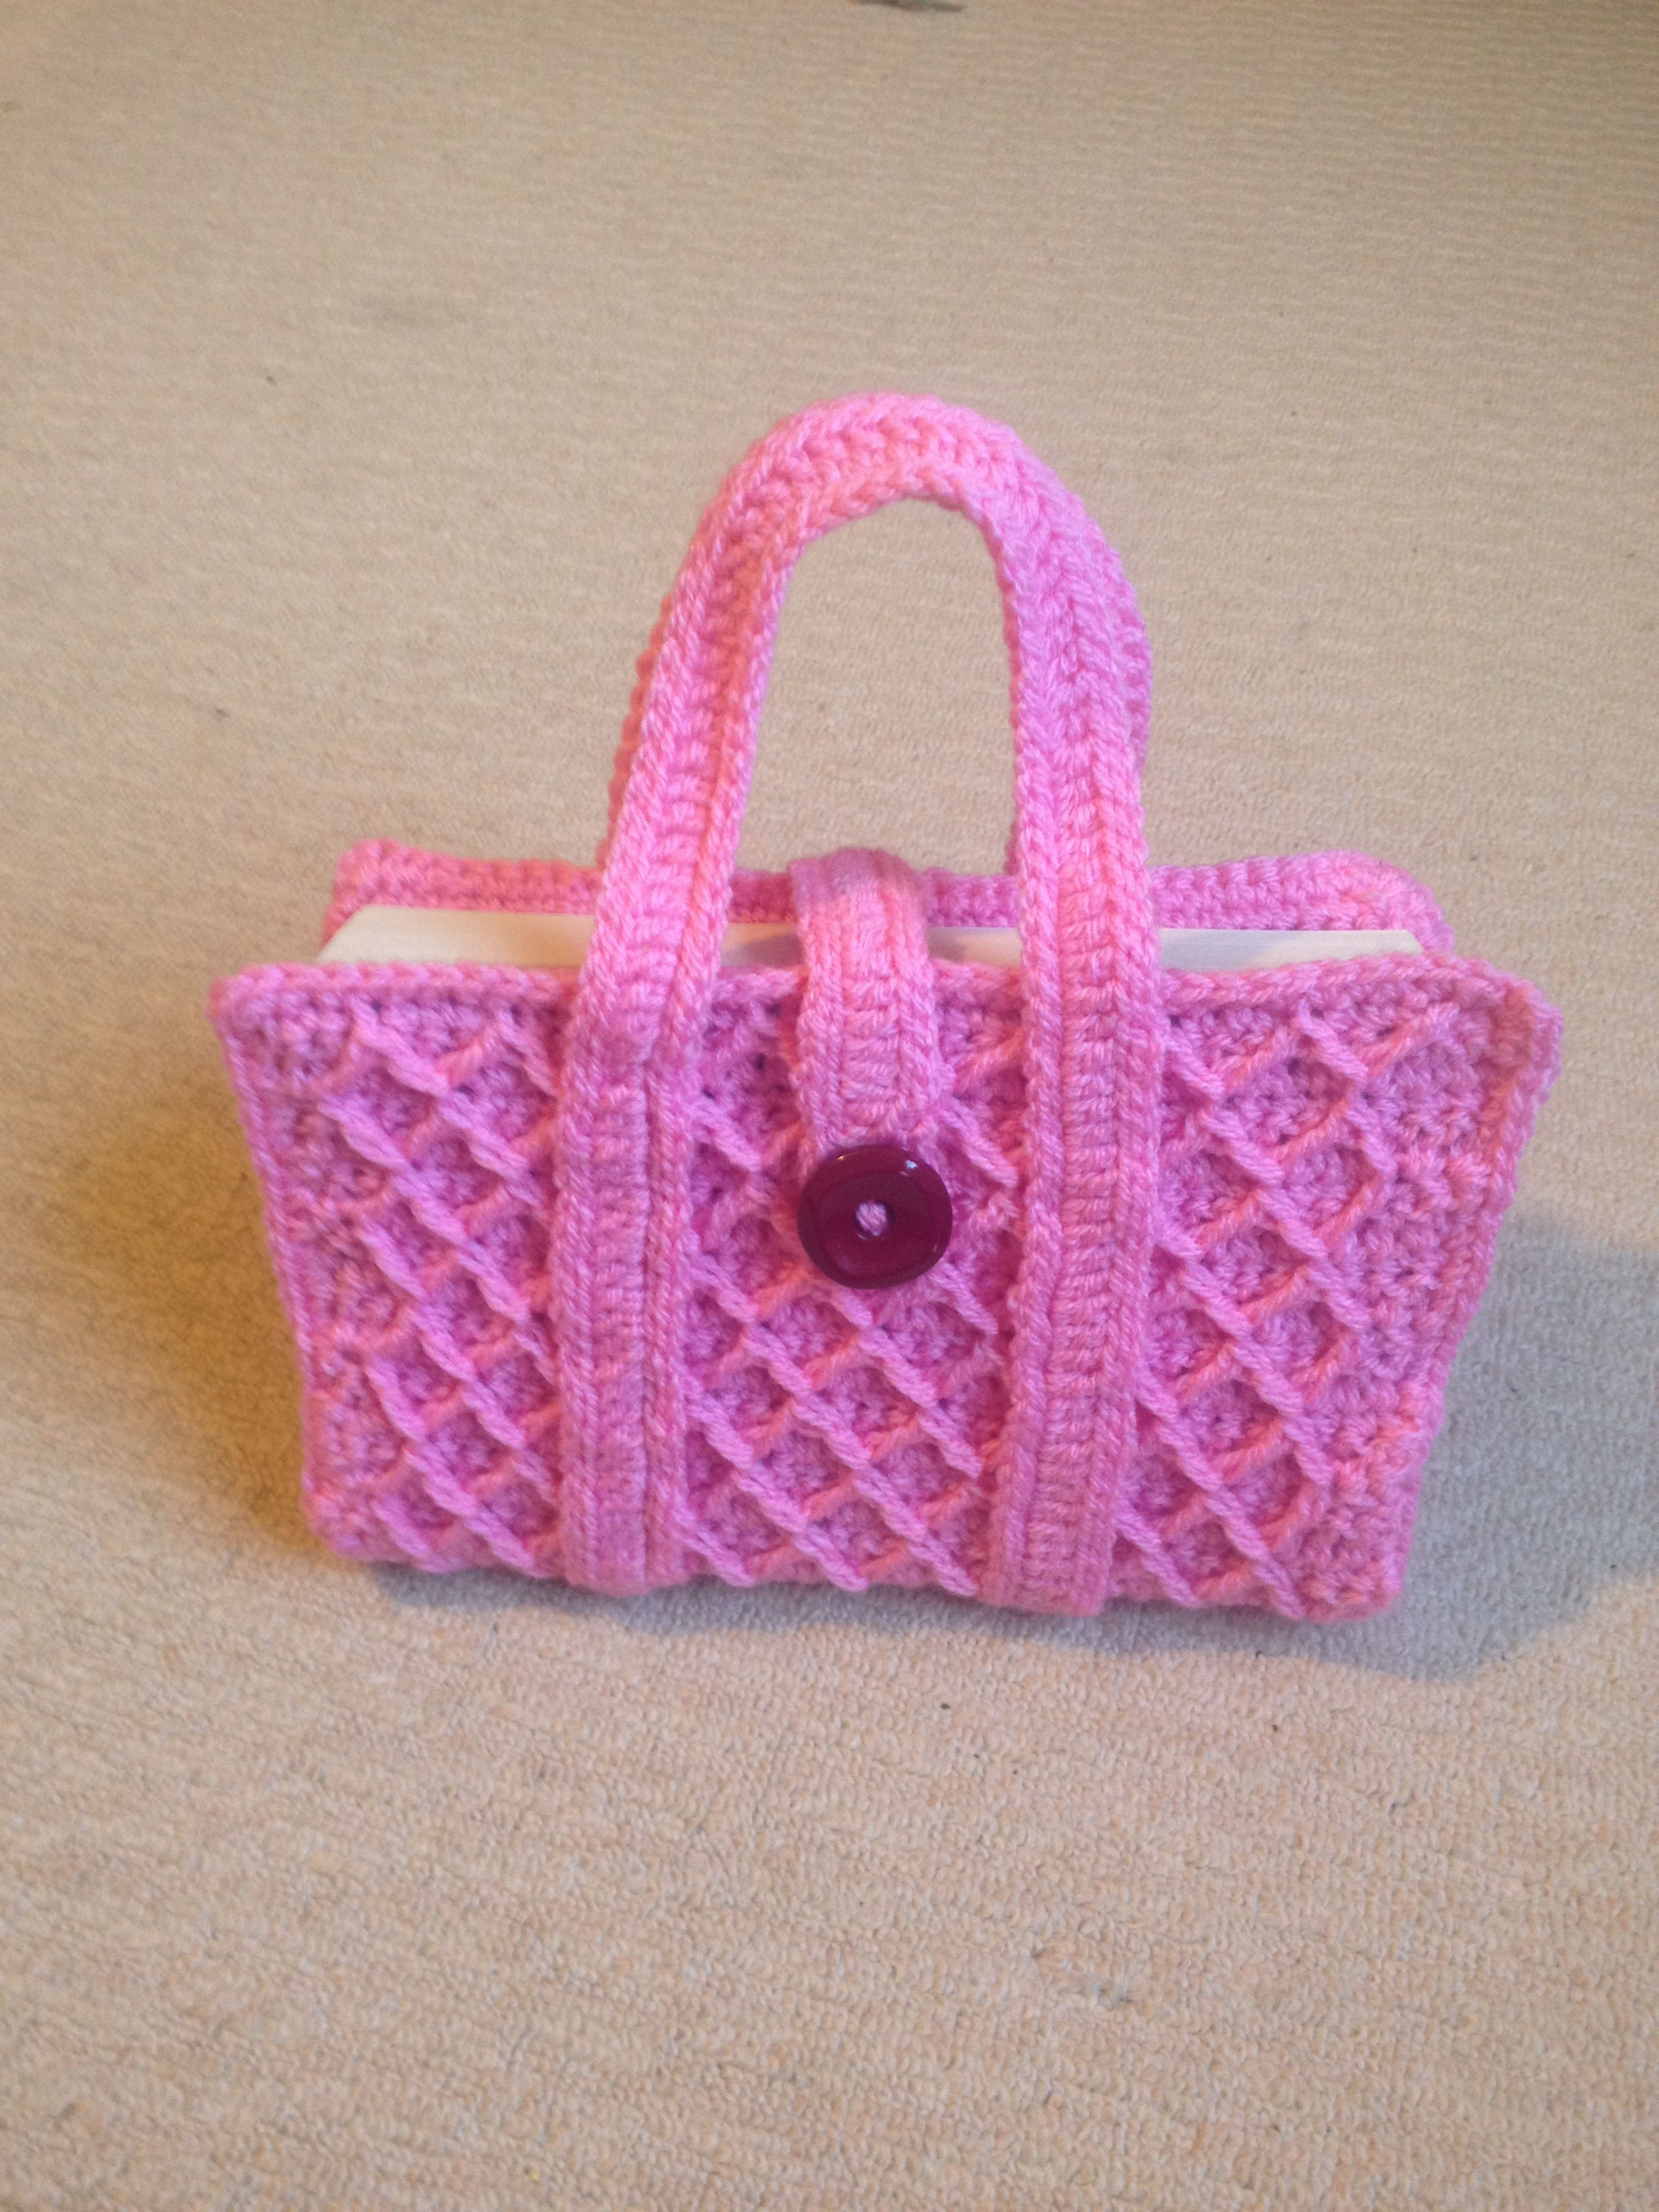 Crochet book cover crochet bags Pinterest